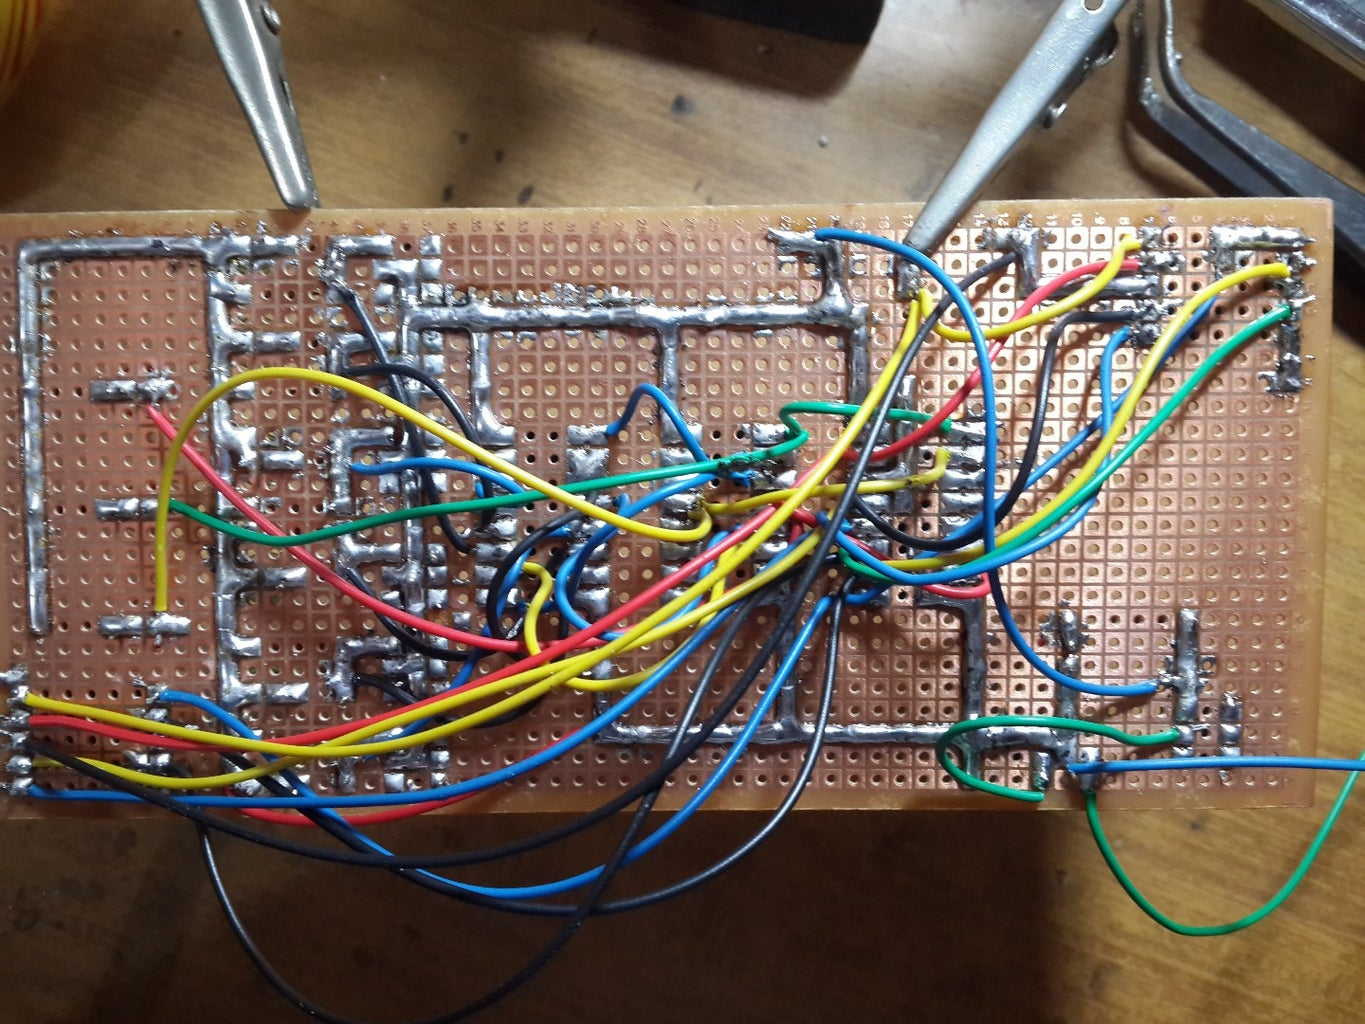 Soldering and Jumper Wires